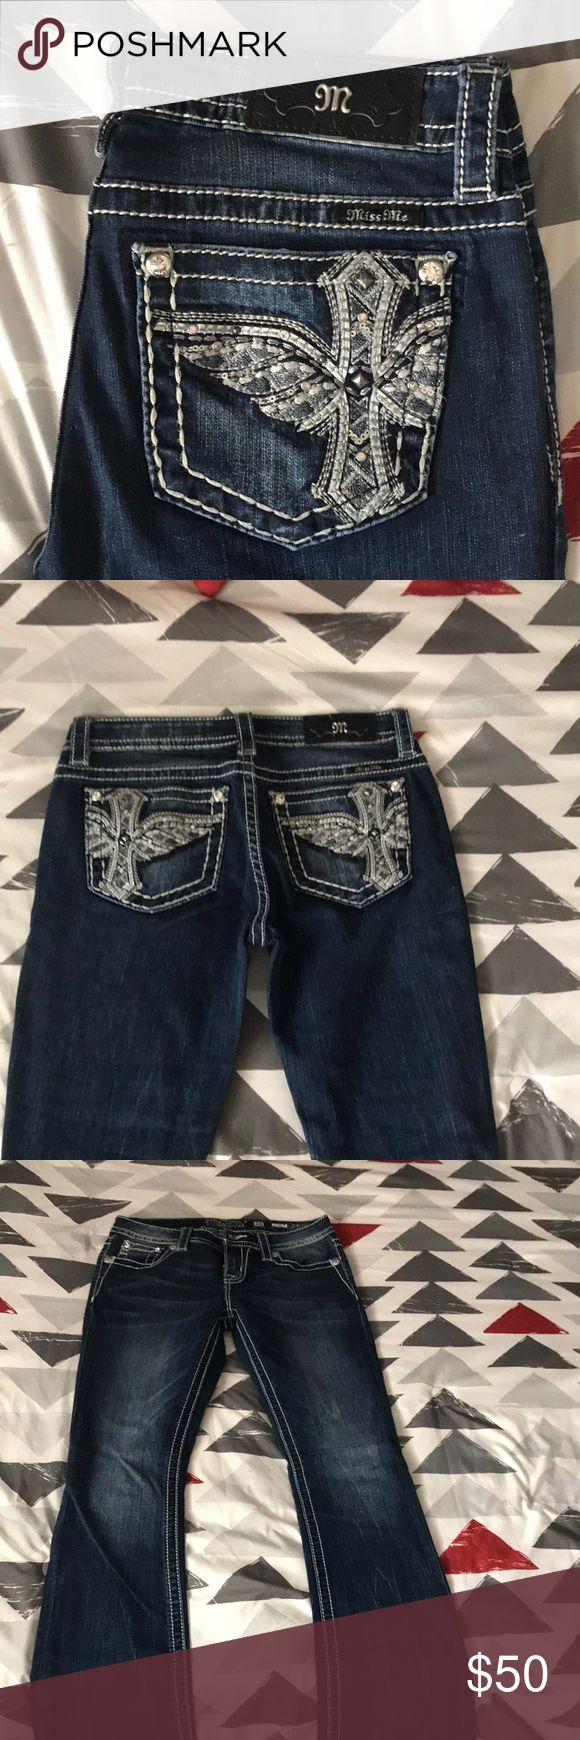 Miss me's BRAND NEW NEVER BEEN WORN. Miss me jeans new from buckle never been worn only had tags removed. Size 28 Miss Me Jeans Boot Cut